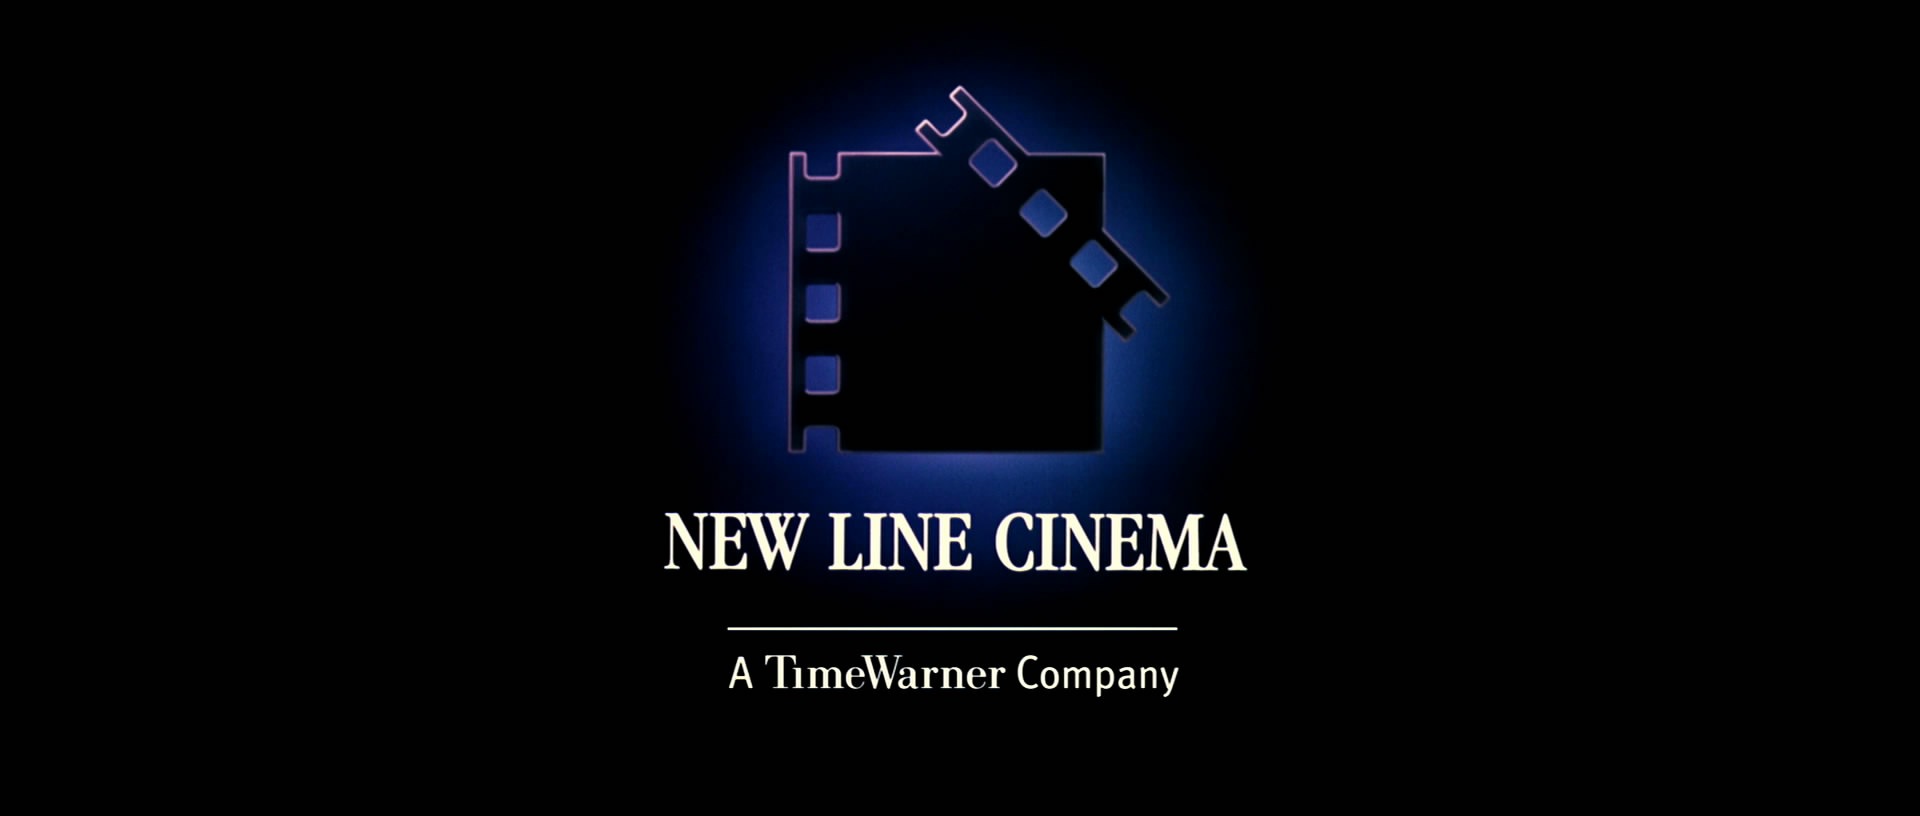 New Line Cinema Has Won the Script for SHUT IN by Newcomer